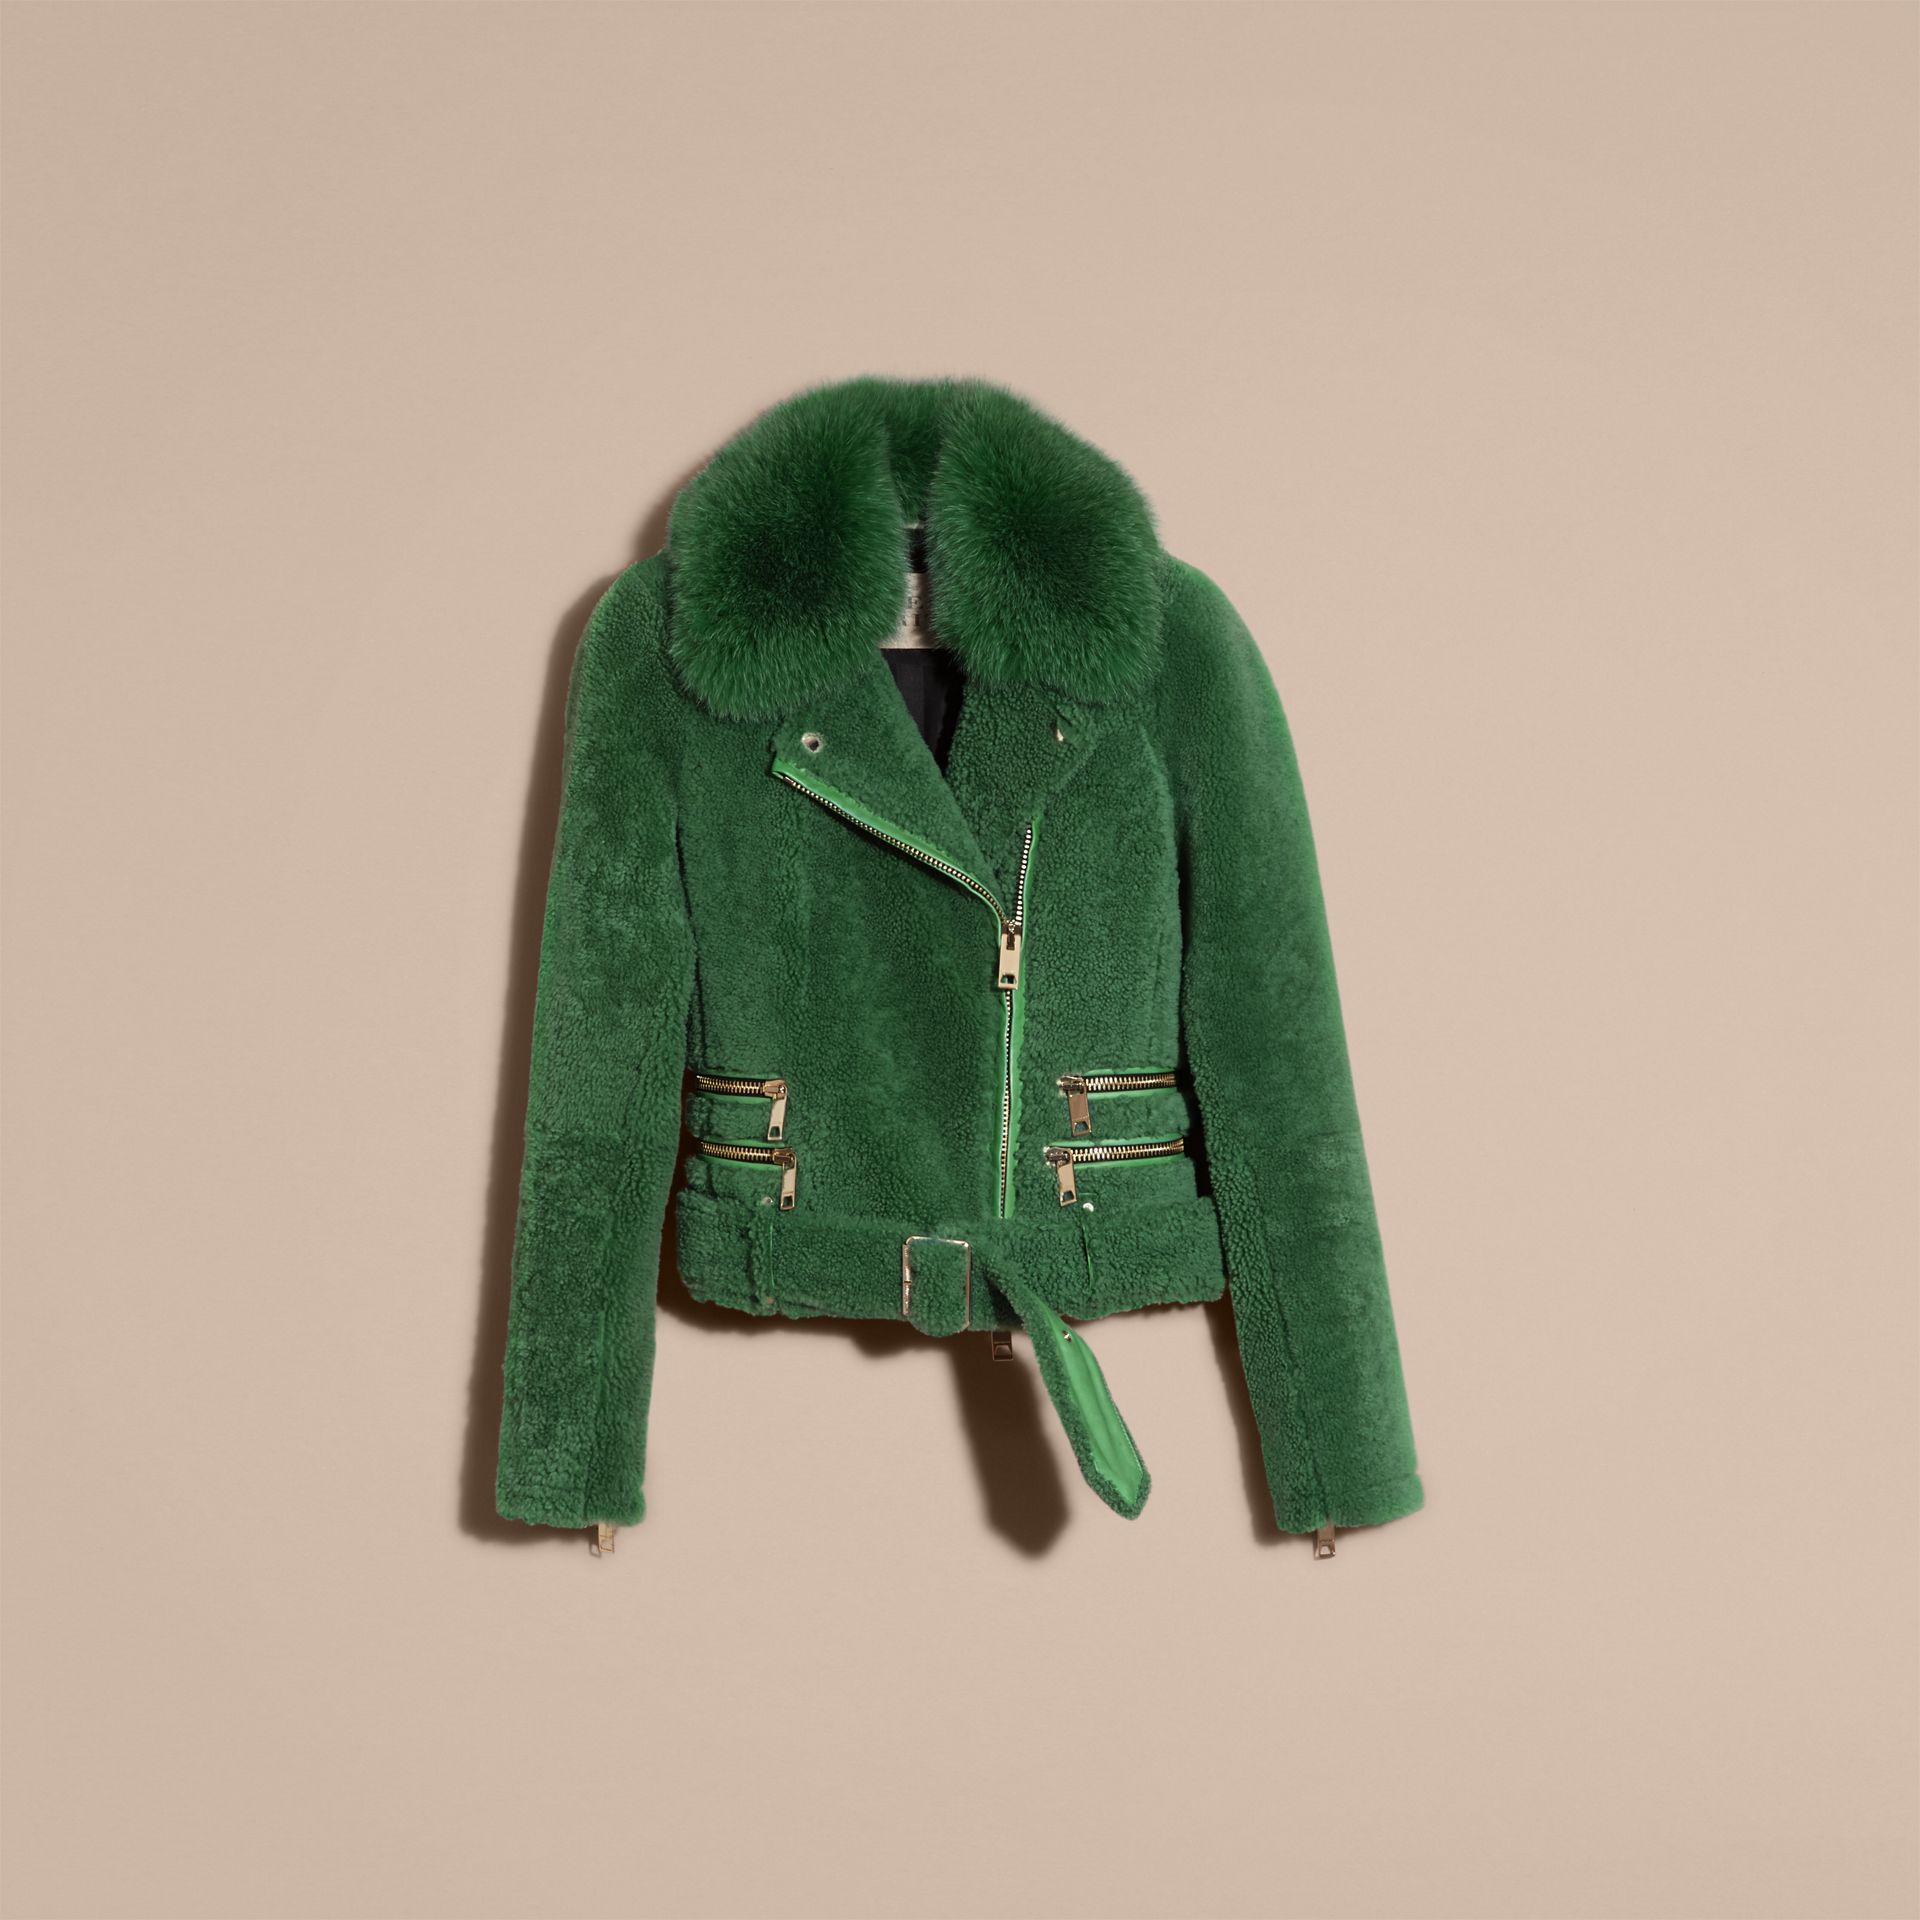 Pigment green Shearling Biker Jacket with Fur Collar Pigment Green - gallery image 4